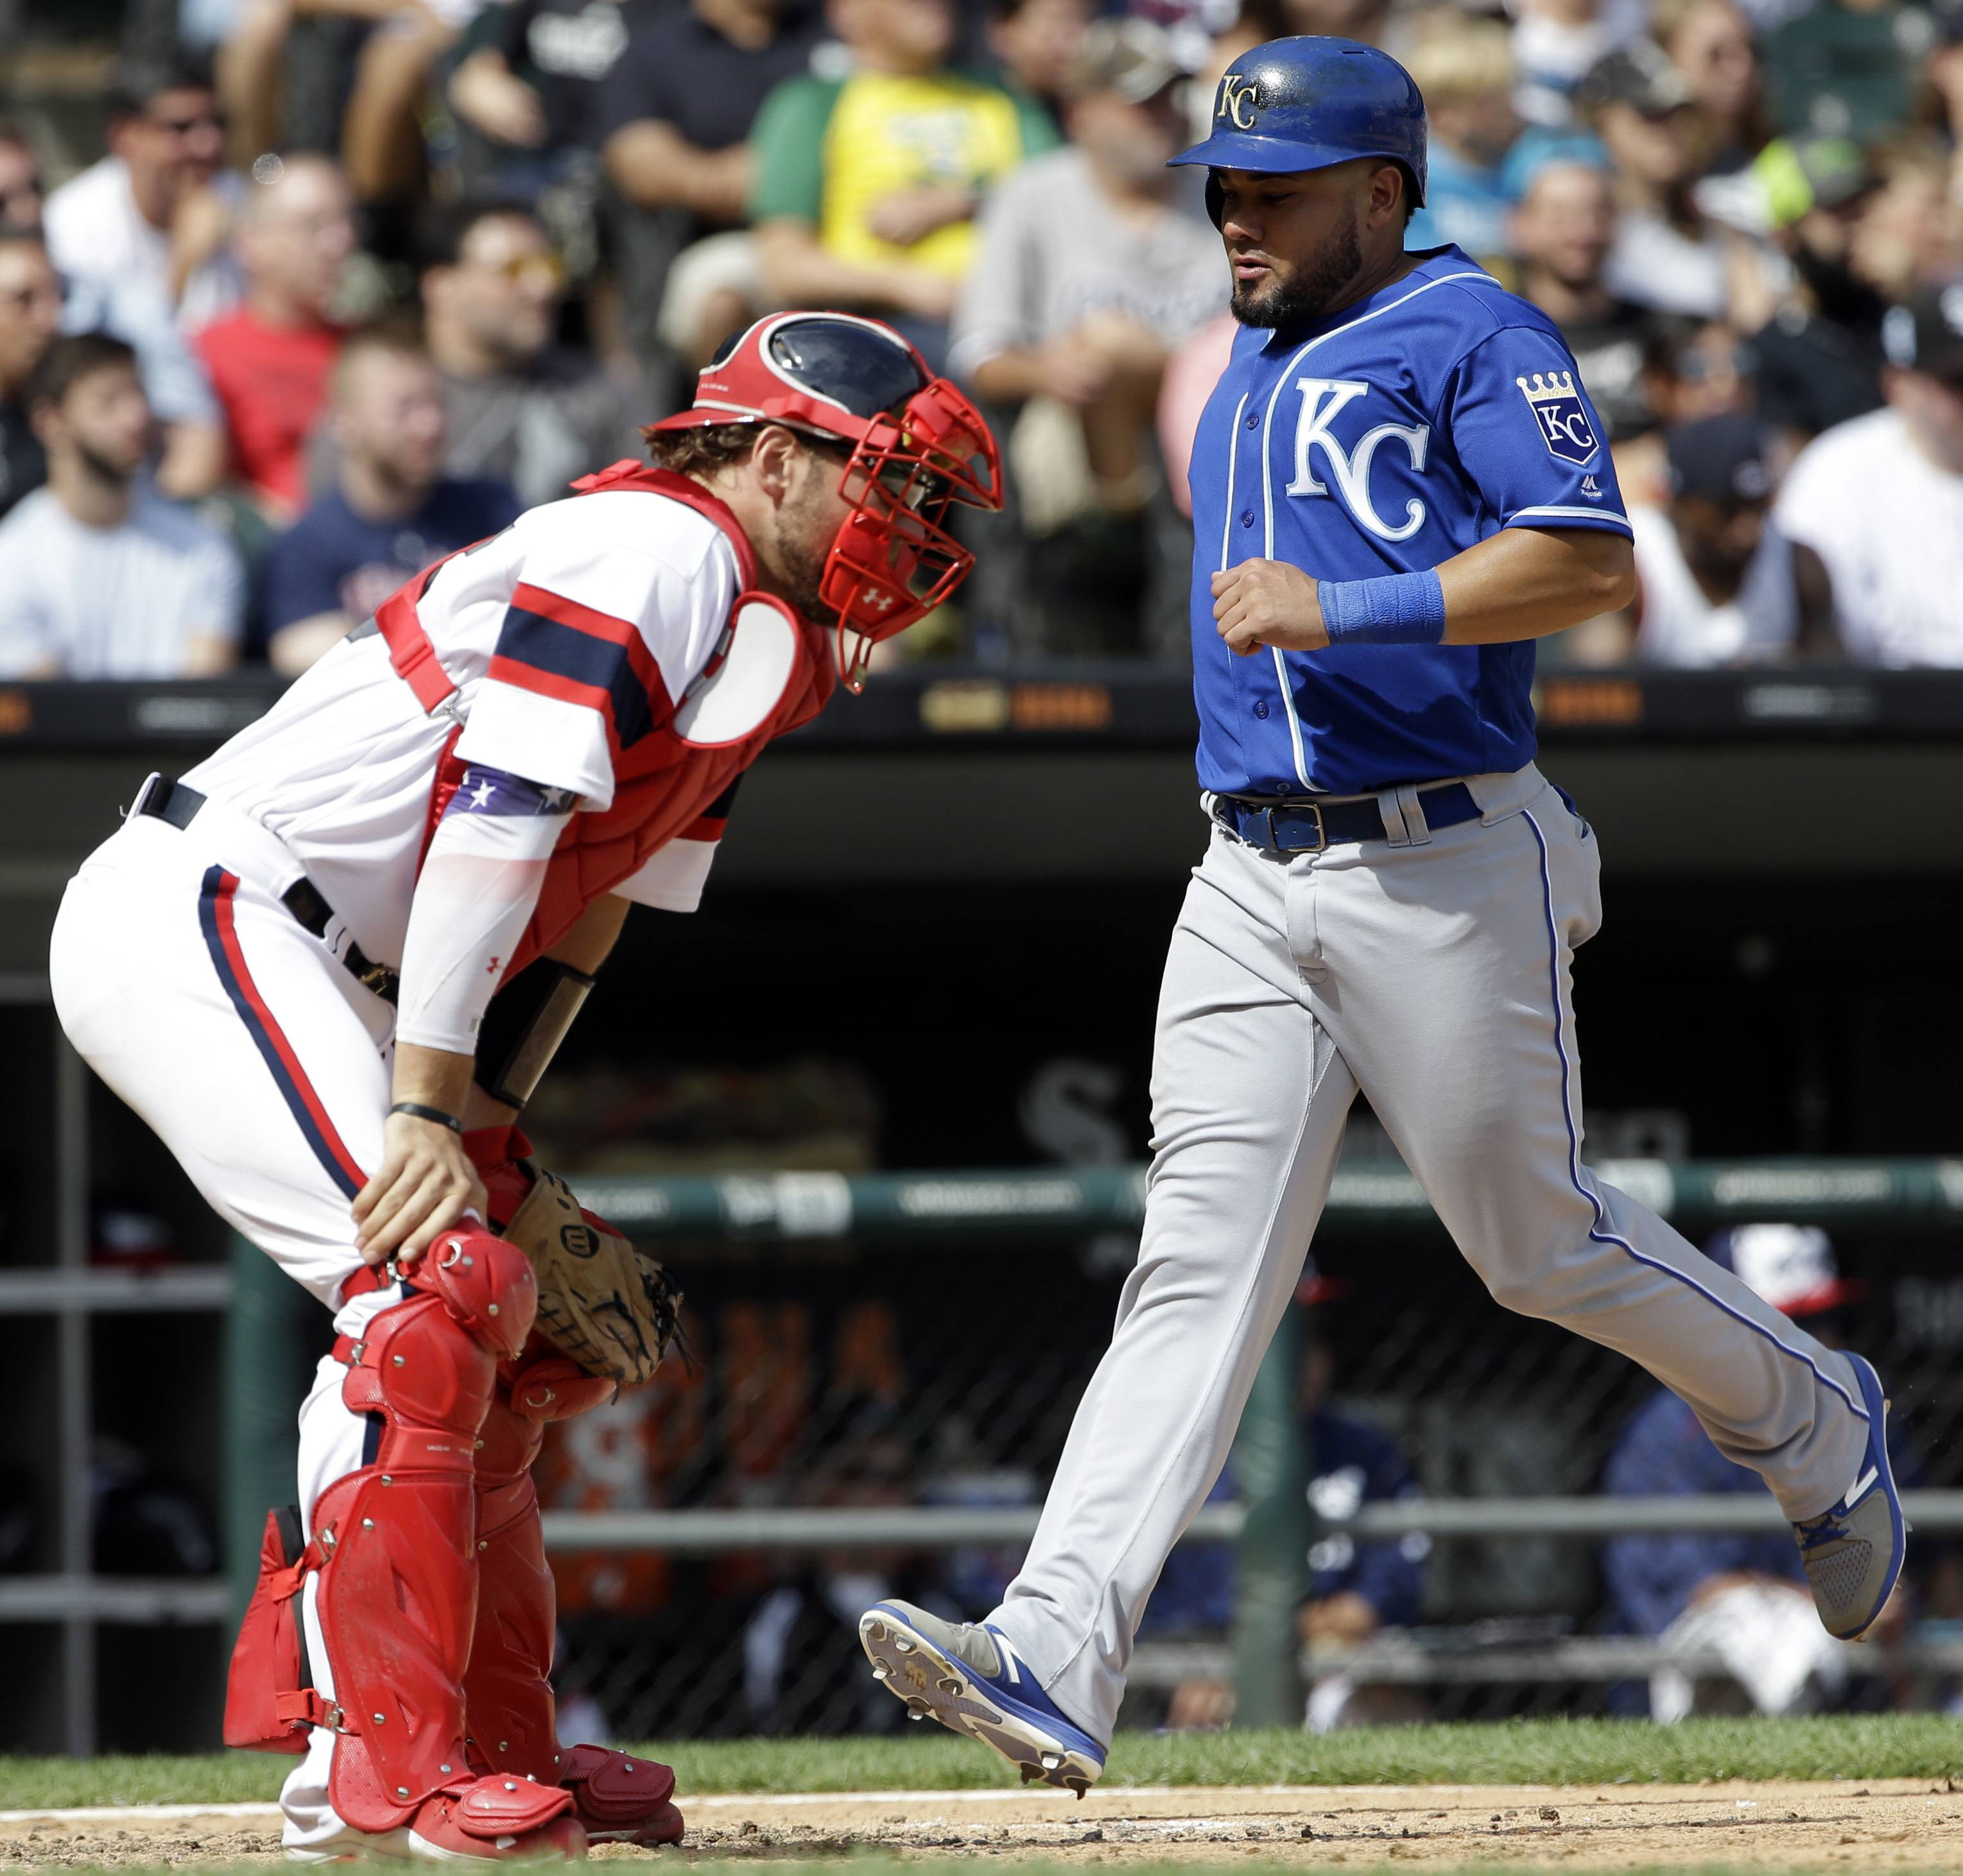 Kansas City Royals' Melky Cabrera, right, scores on a single by Jorge Bonifacio as Chicago White Sox catcher Kevan Smith looks to the field during the sixth inning of a baseball game Sunday, Aug. 13, 2017, in Chicago.